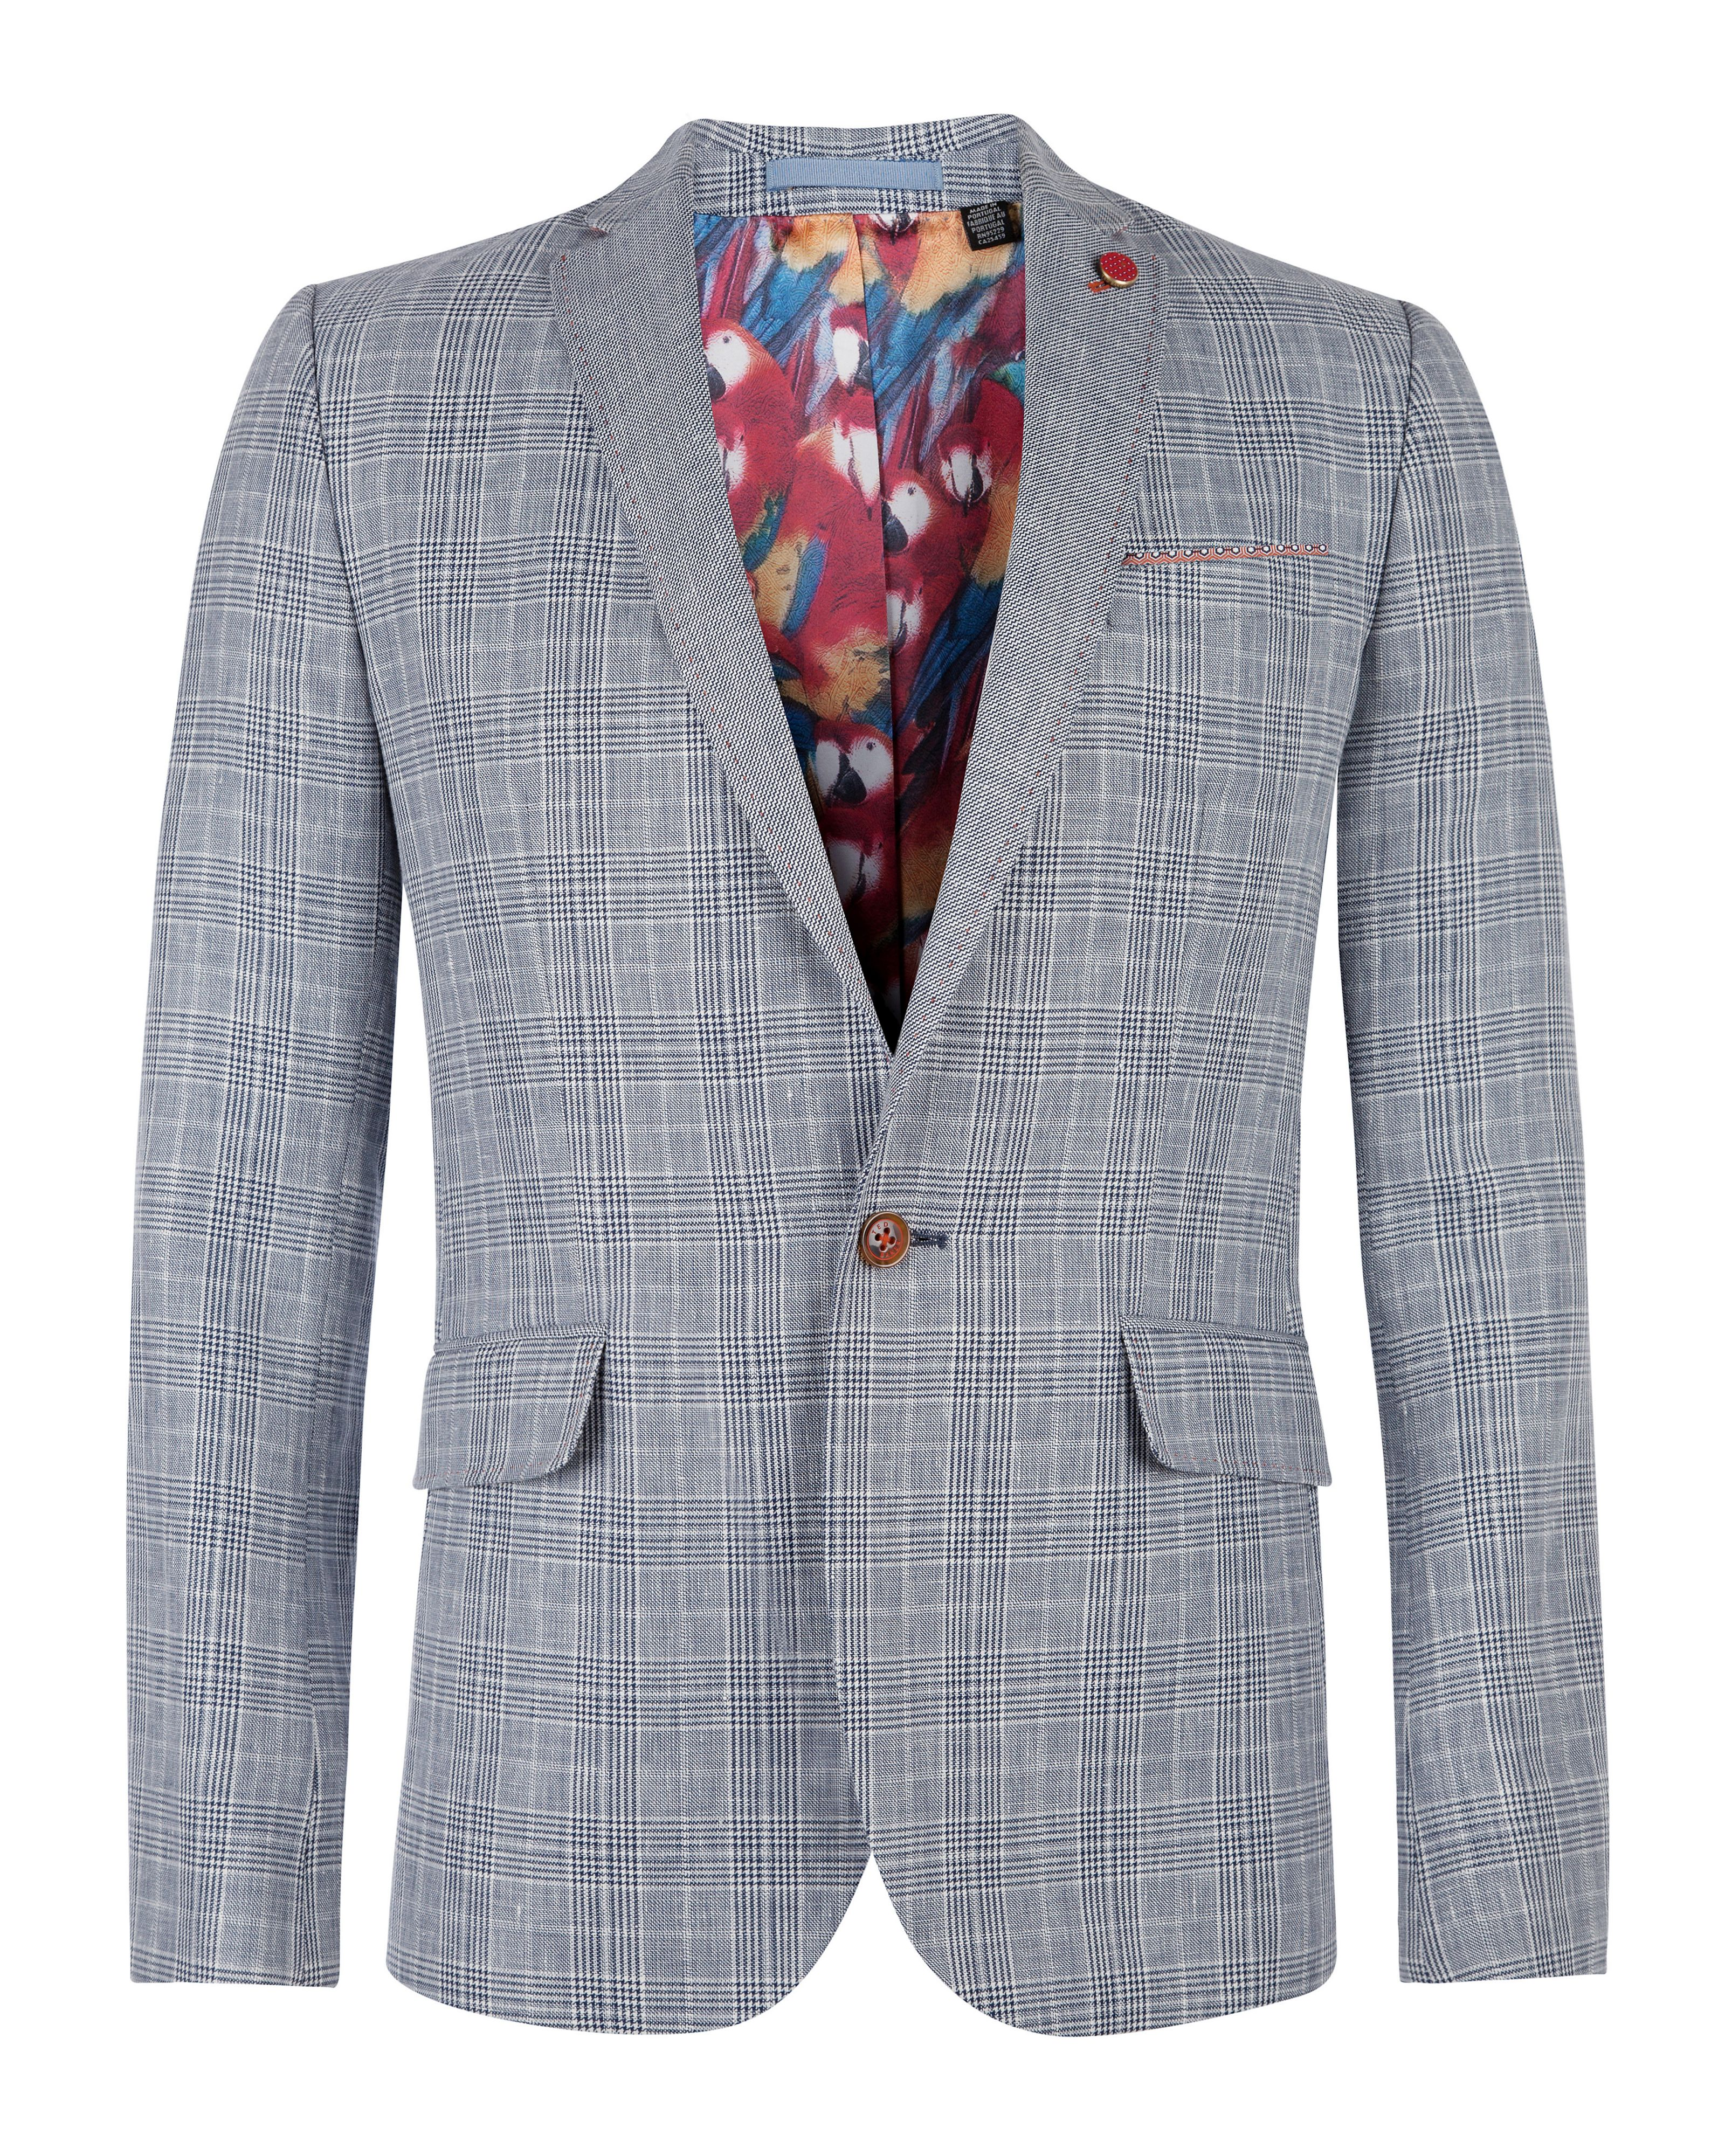 Eower check blazer